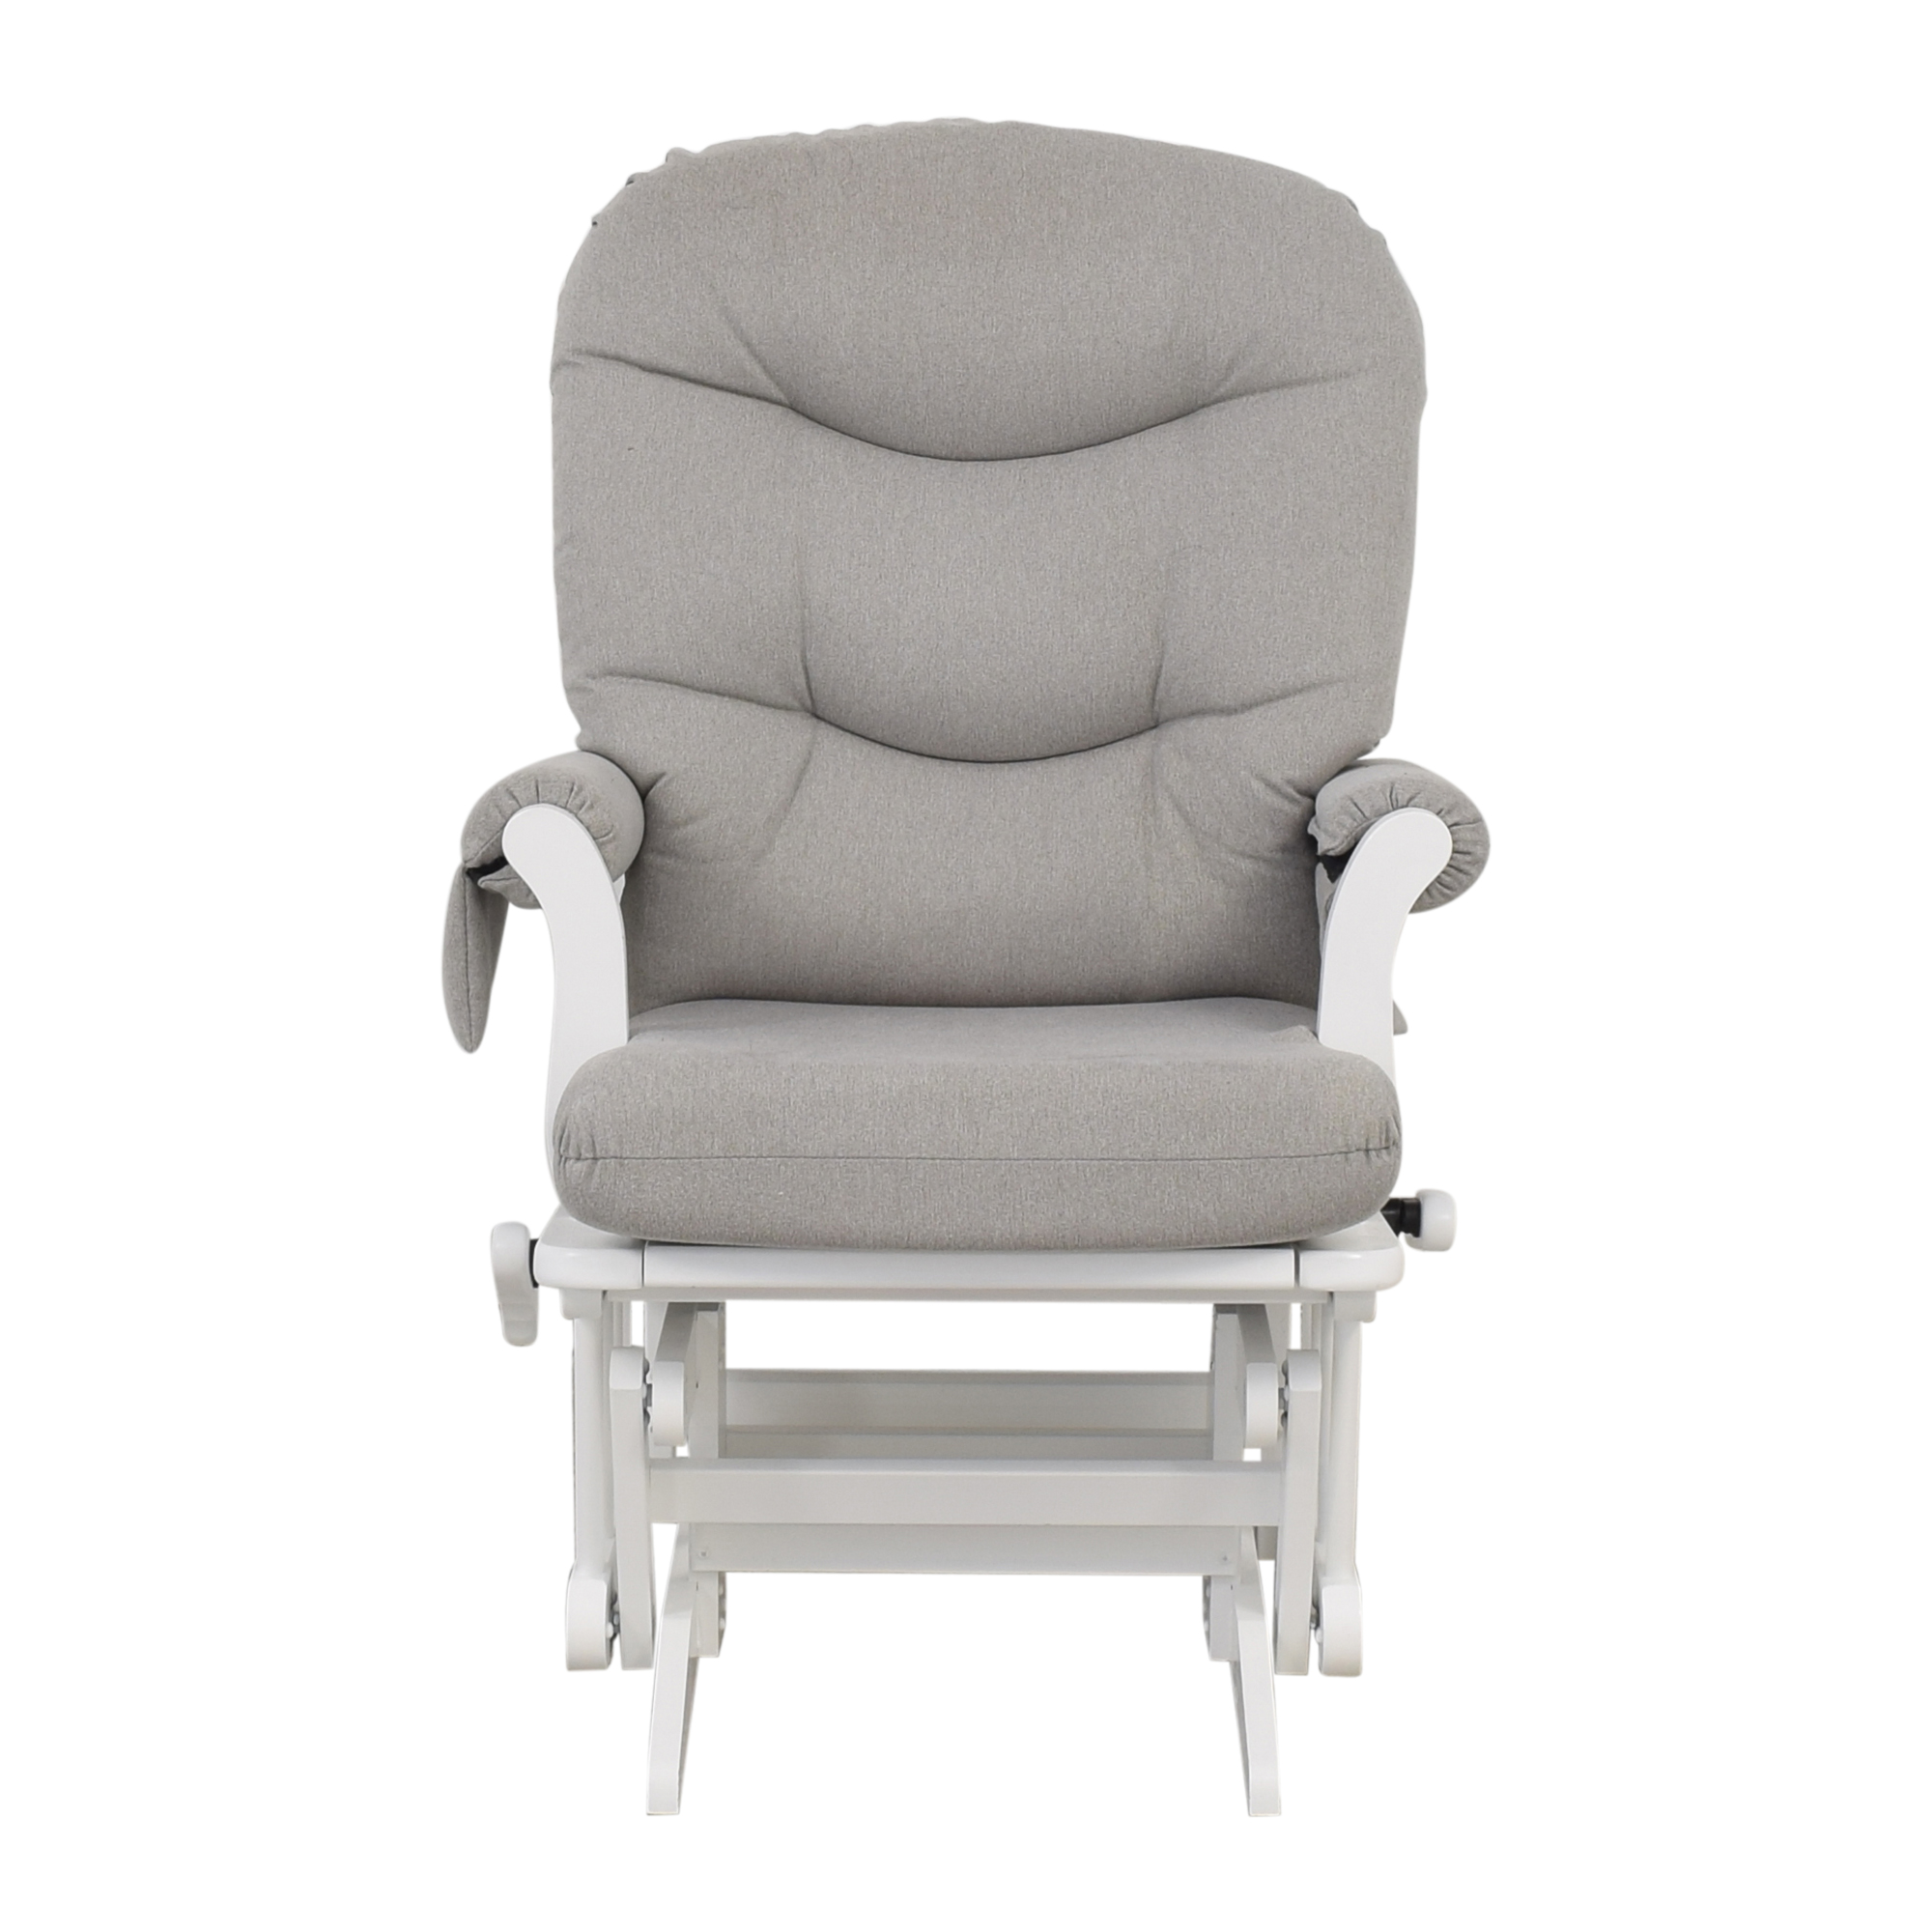 buy Dutailier Dutailier Multi-Position Reclining Sleigh Glider and Nursing Ottoman online